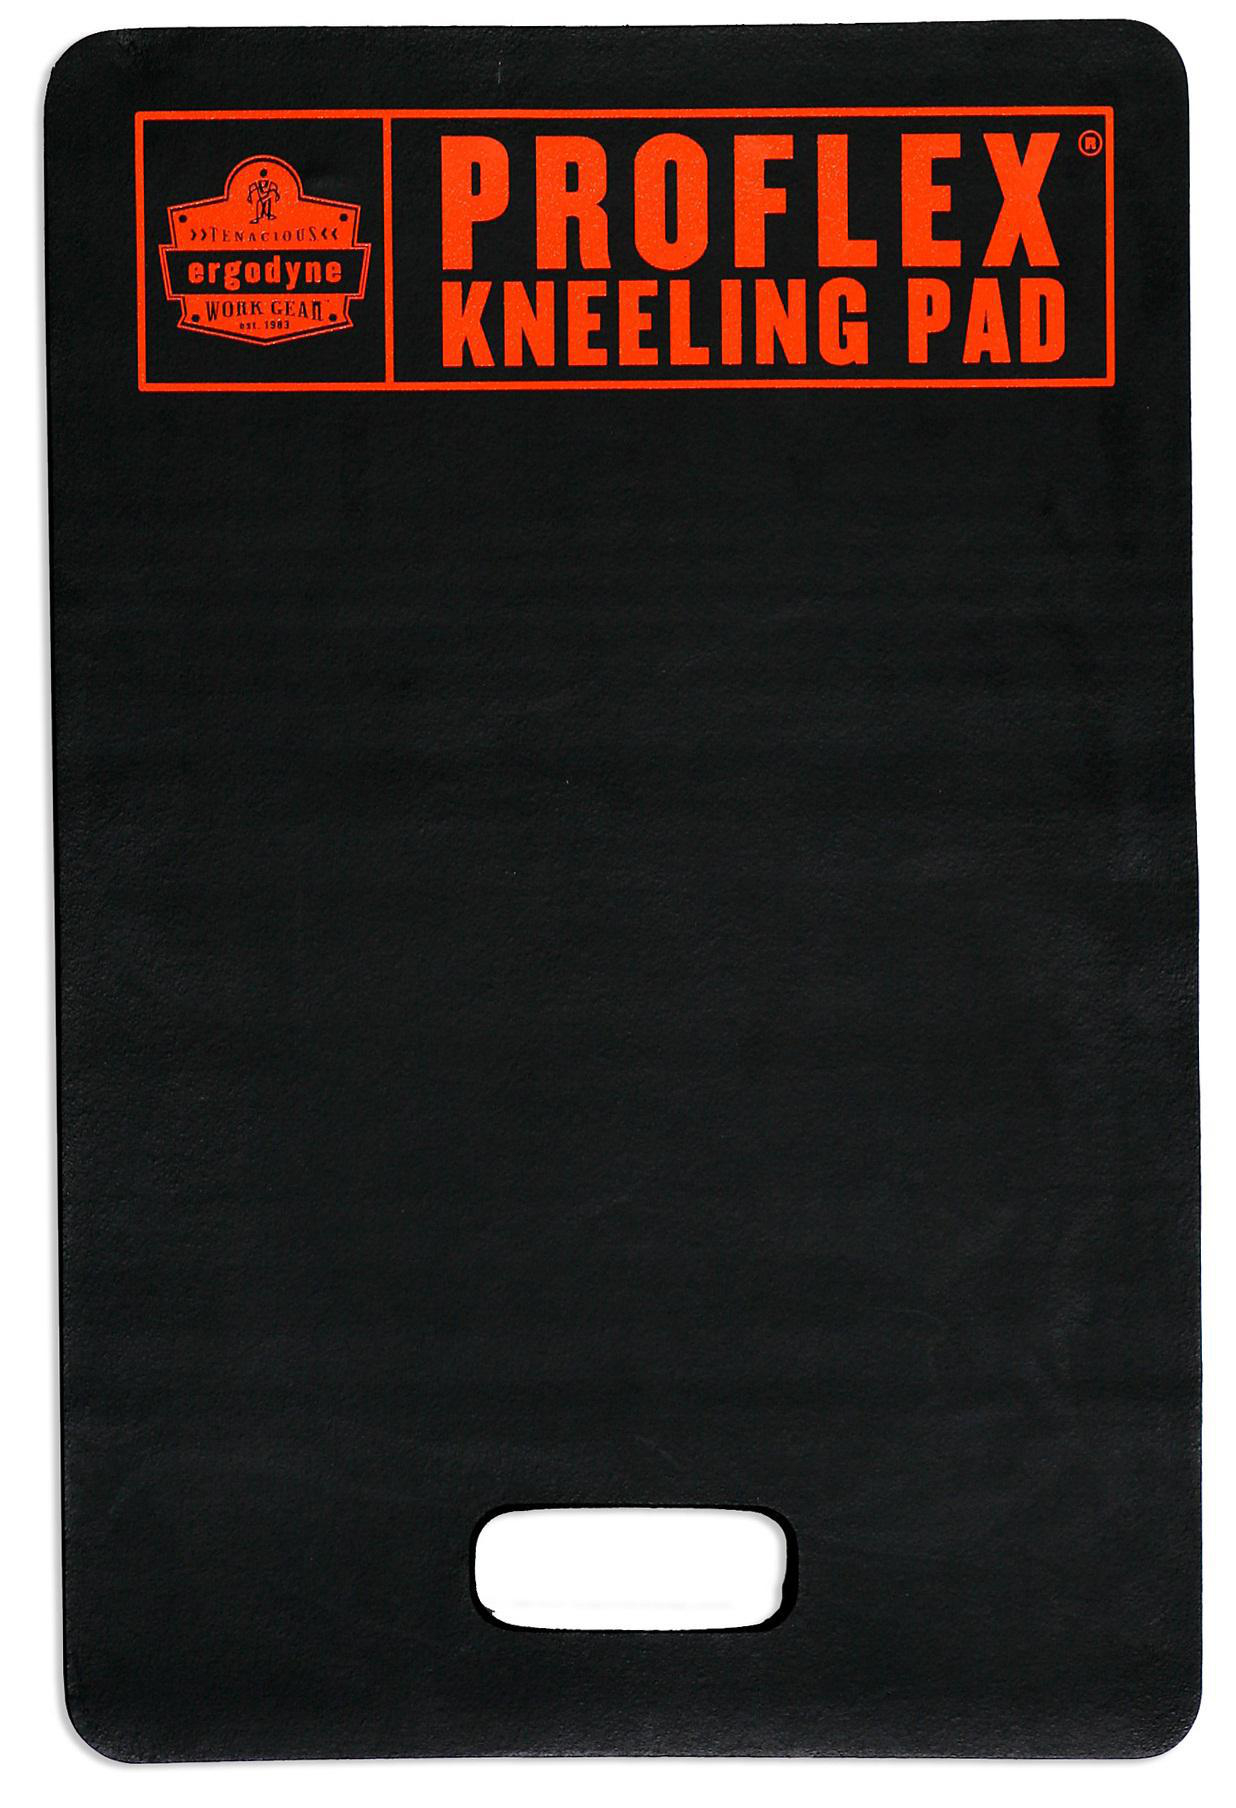 Foot and Leg Protection